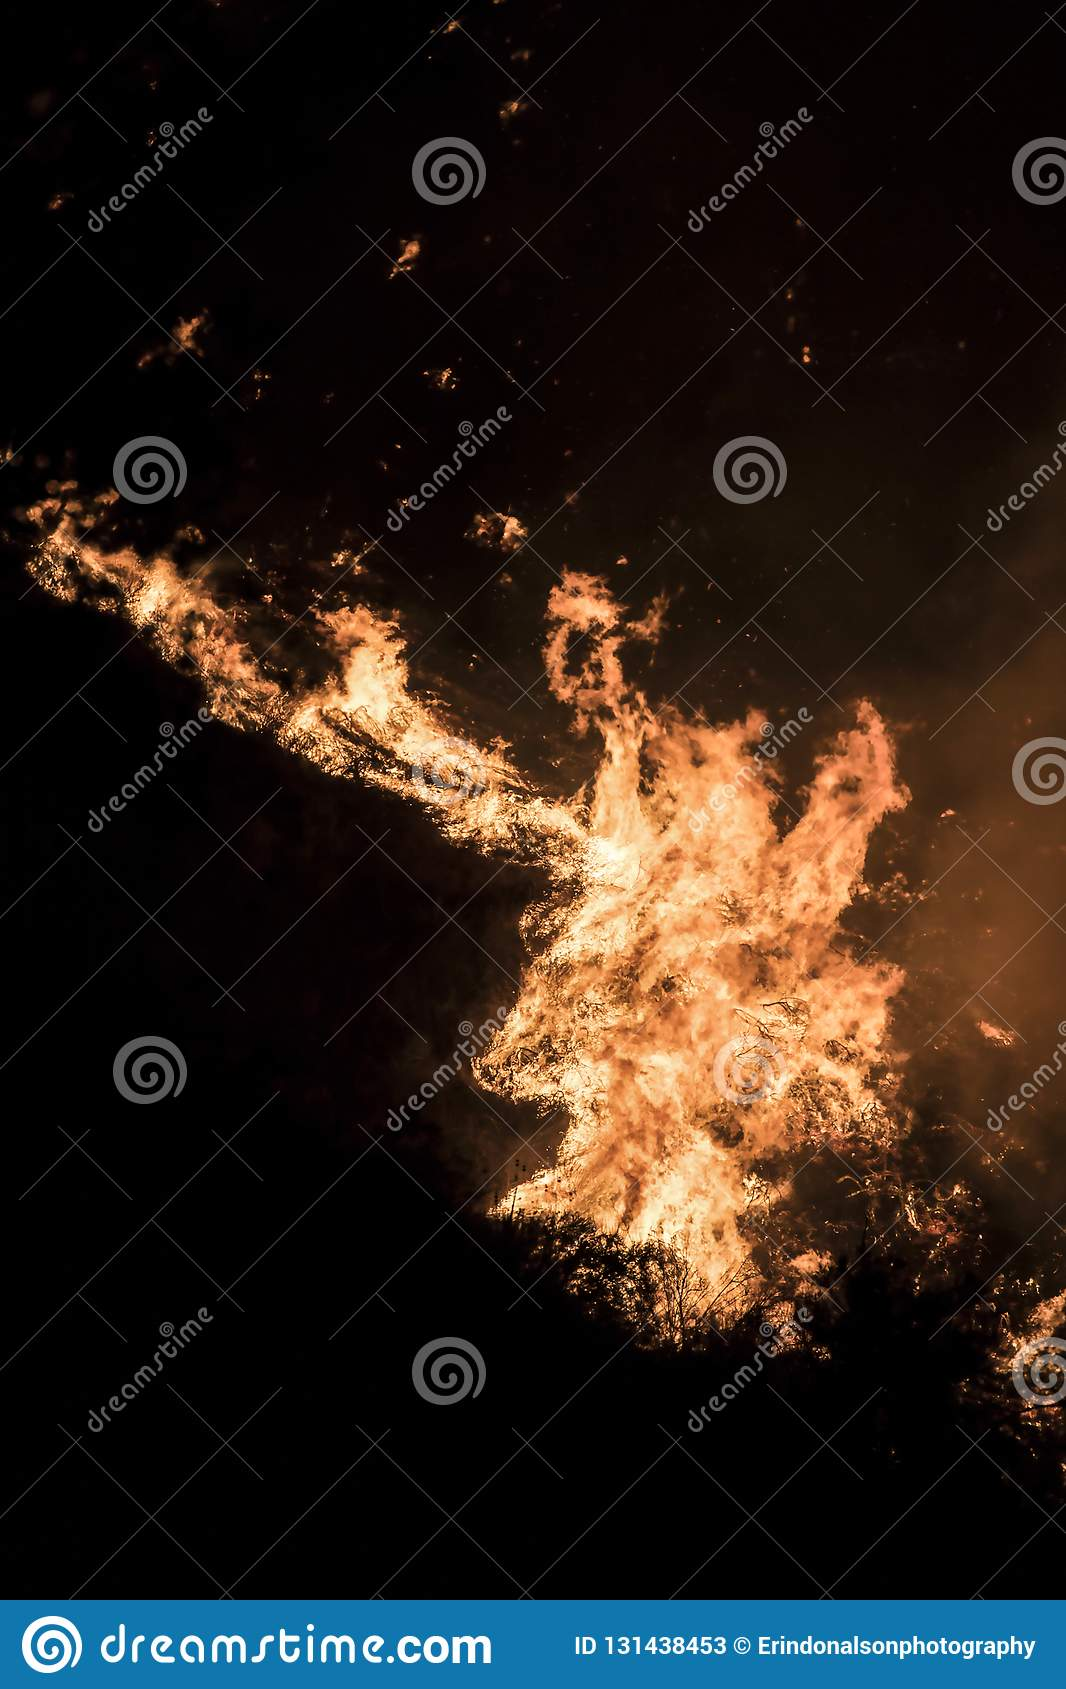 Close Up Detail of Bright Orange Flames at Night During California Fires